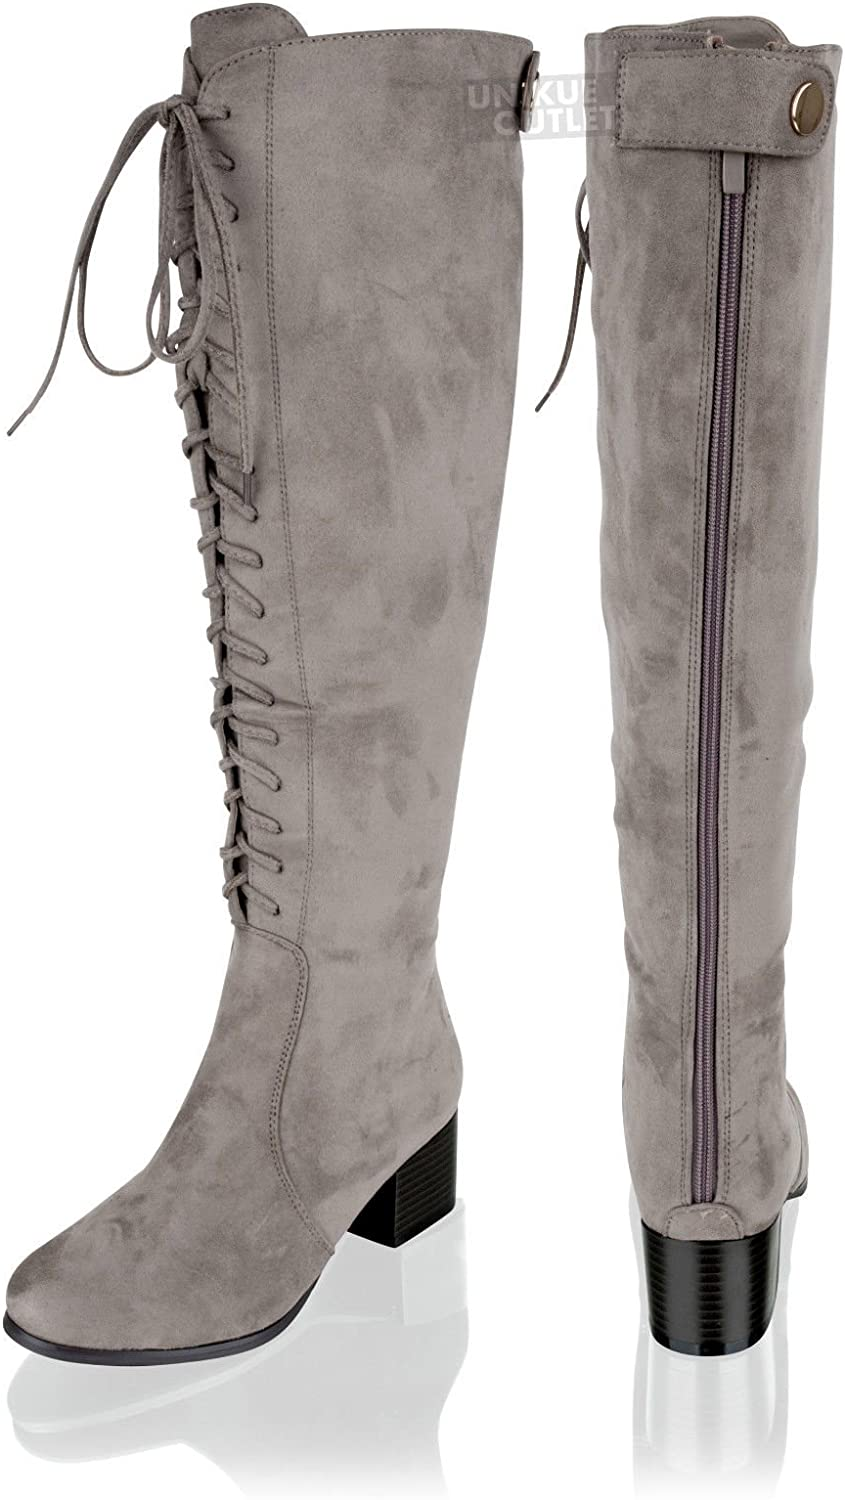 New Womens Ladies Knee High Lace Up Suede Wide Calf Mid Block Heel Boots Size